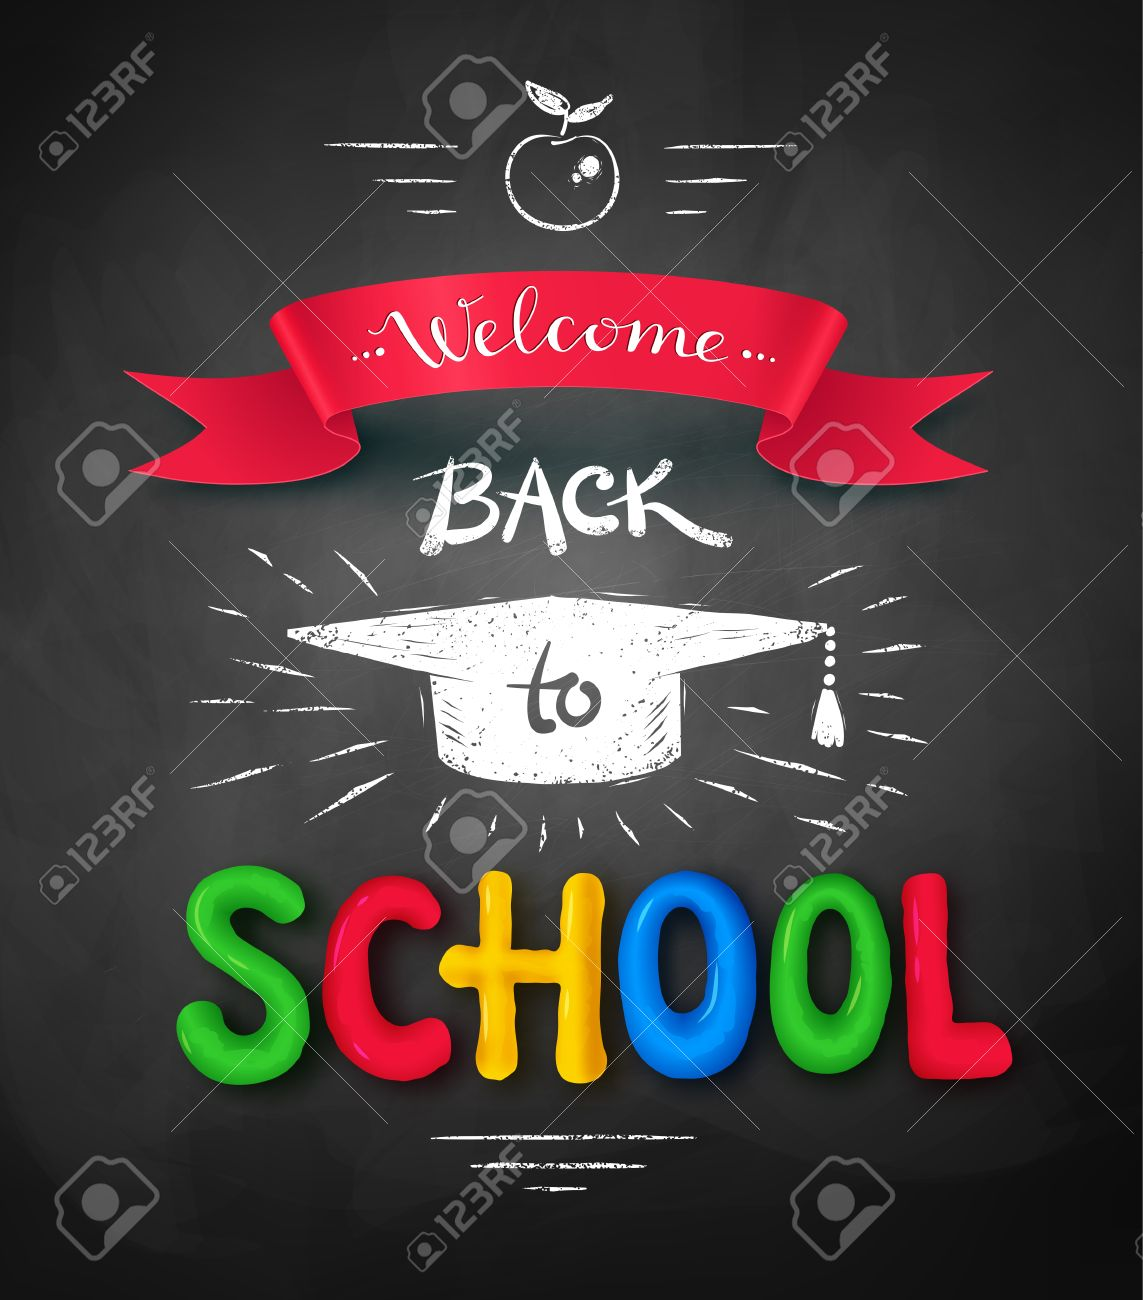 welcome welcome back to school letter